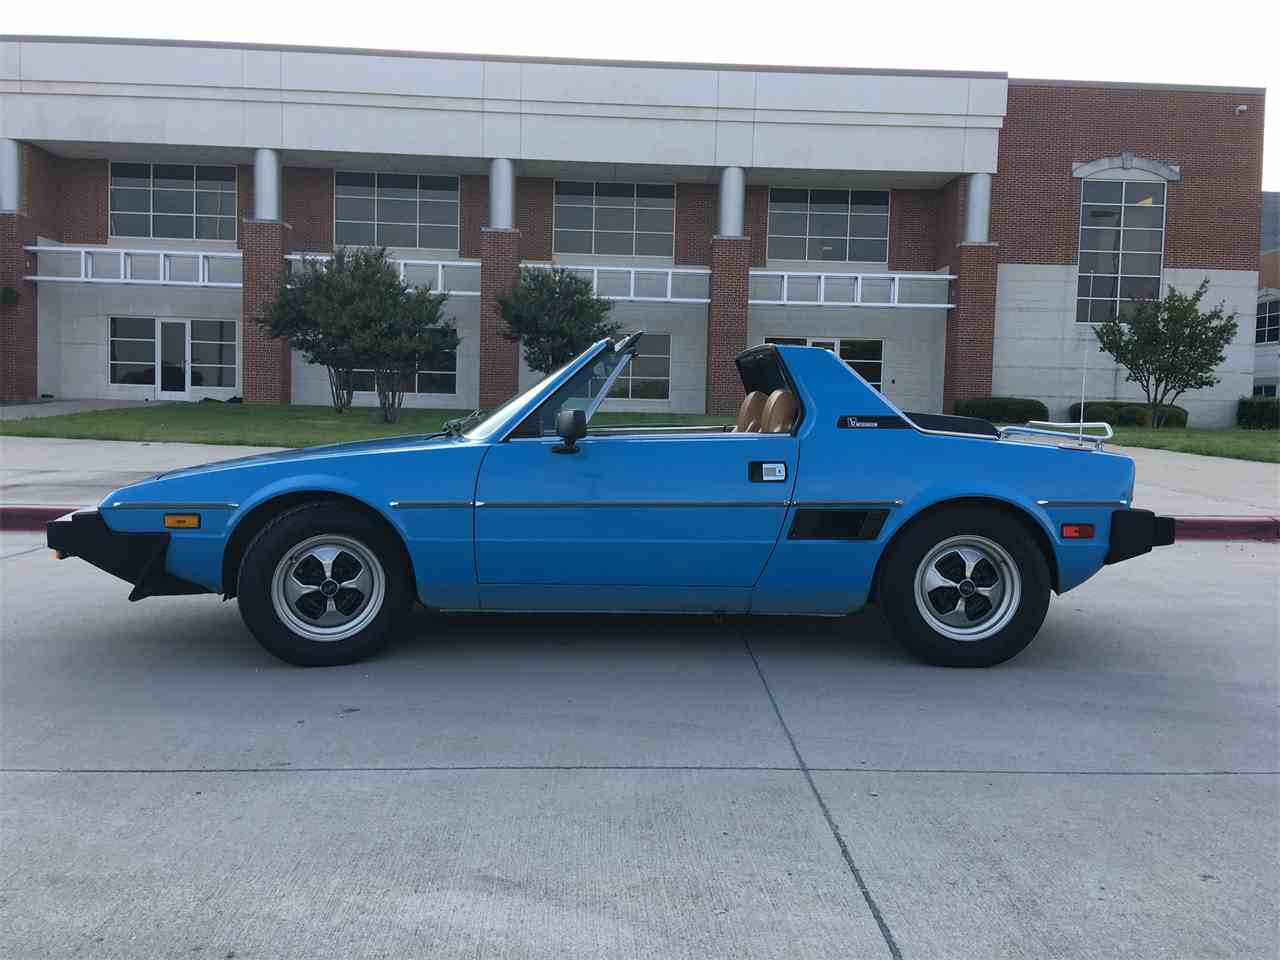 bertone points owned non local running s com beater showthread by fiat low this sale says vwvortex for i he car it with who enthusiast parts should a maintained years buy